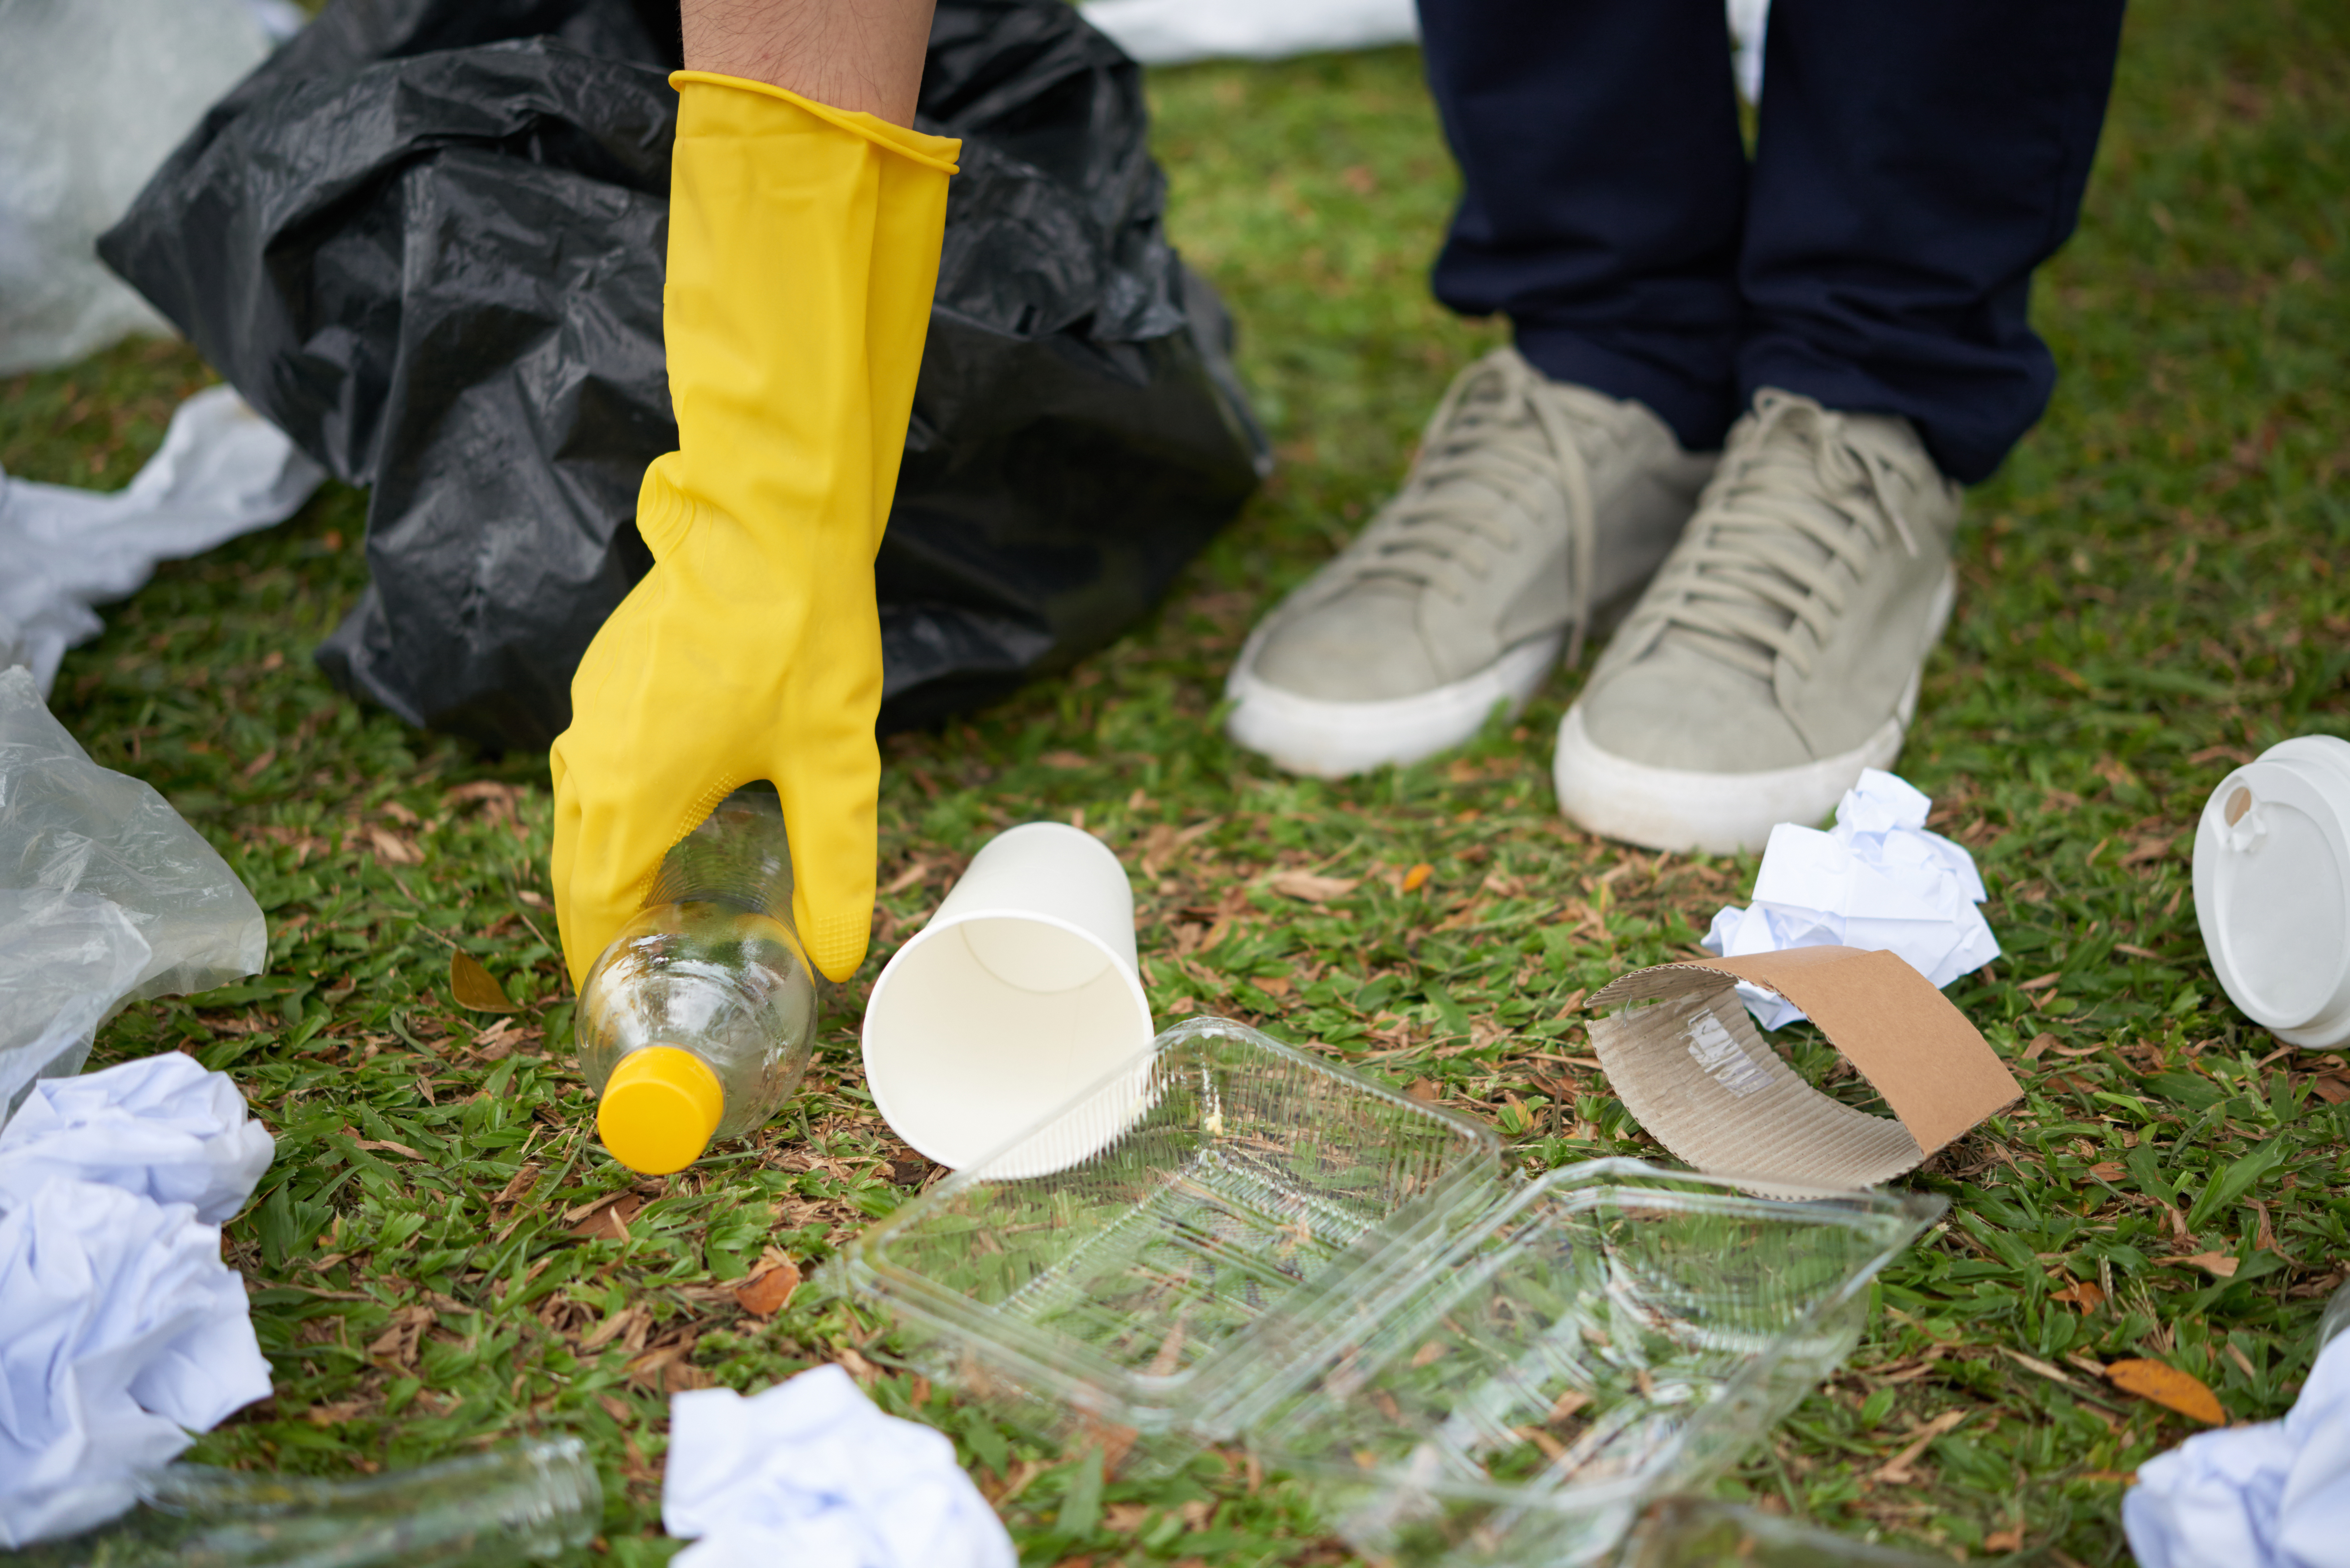 cleaning trash on green grass with yellow gloves